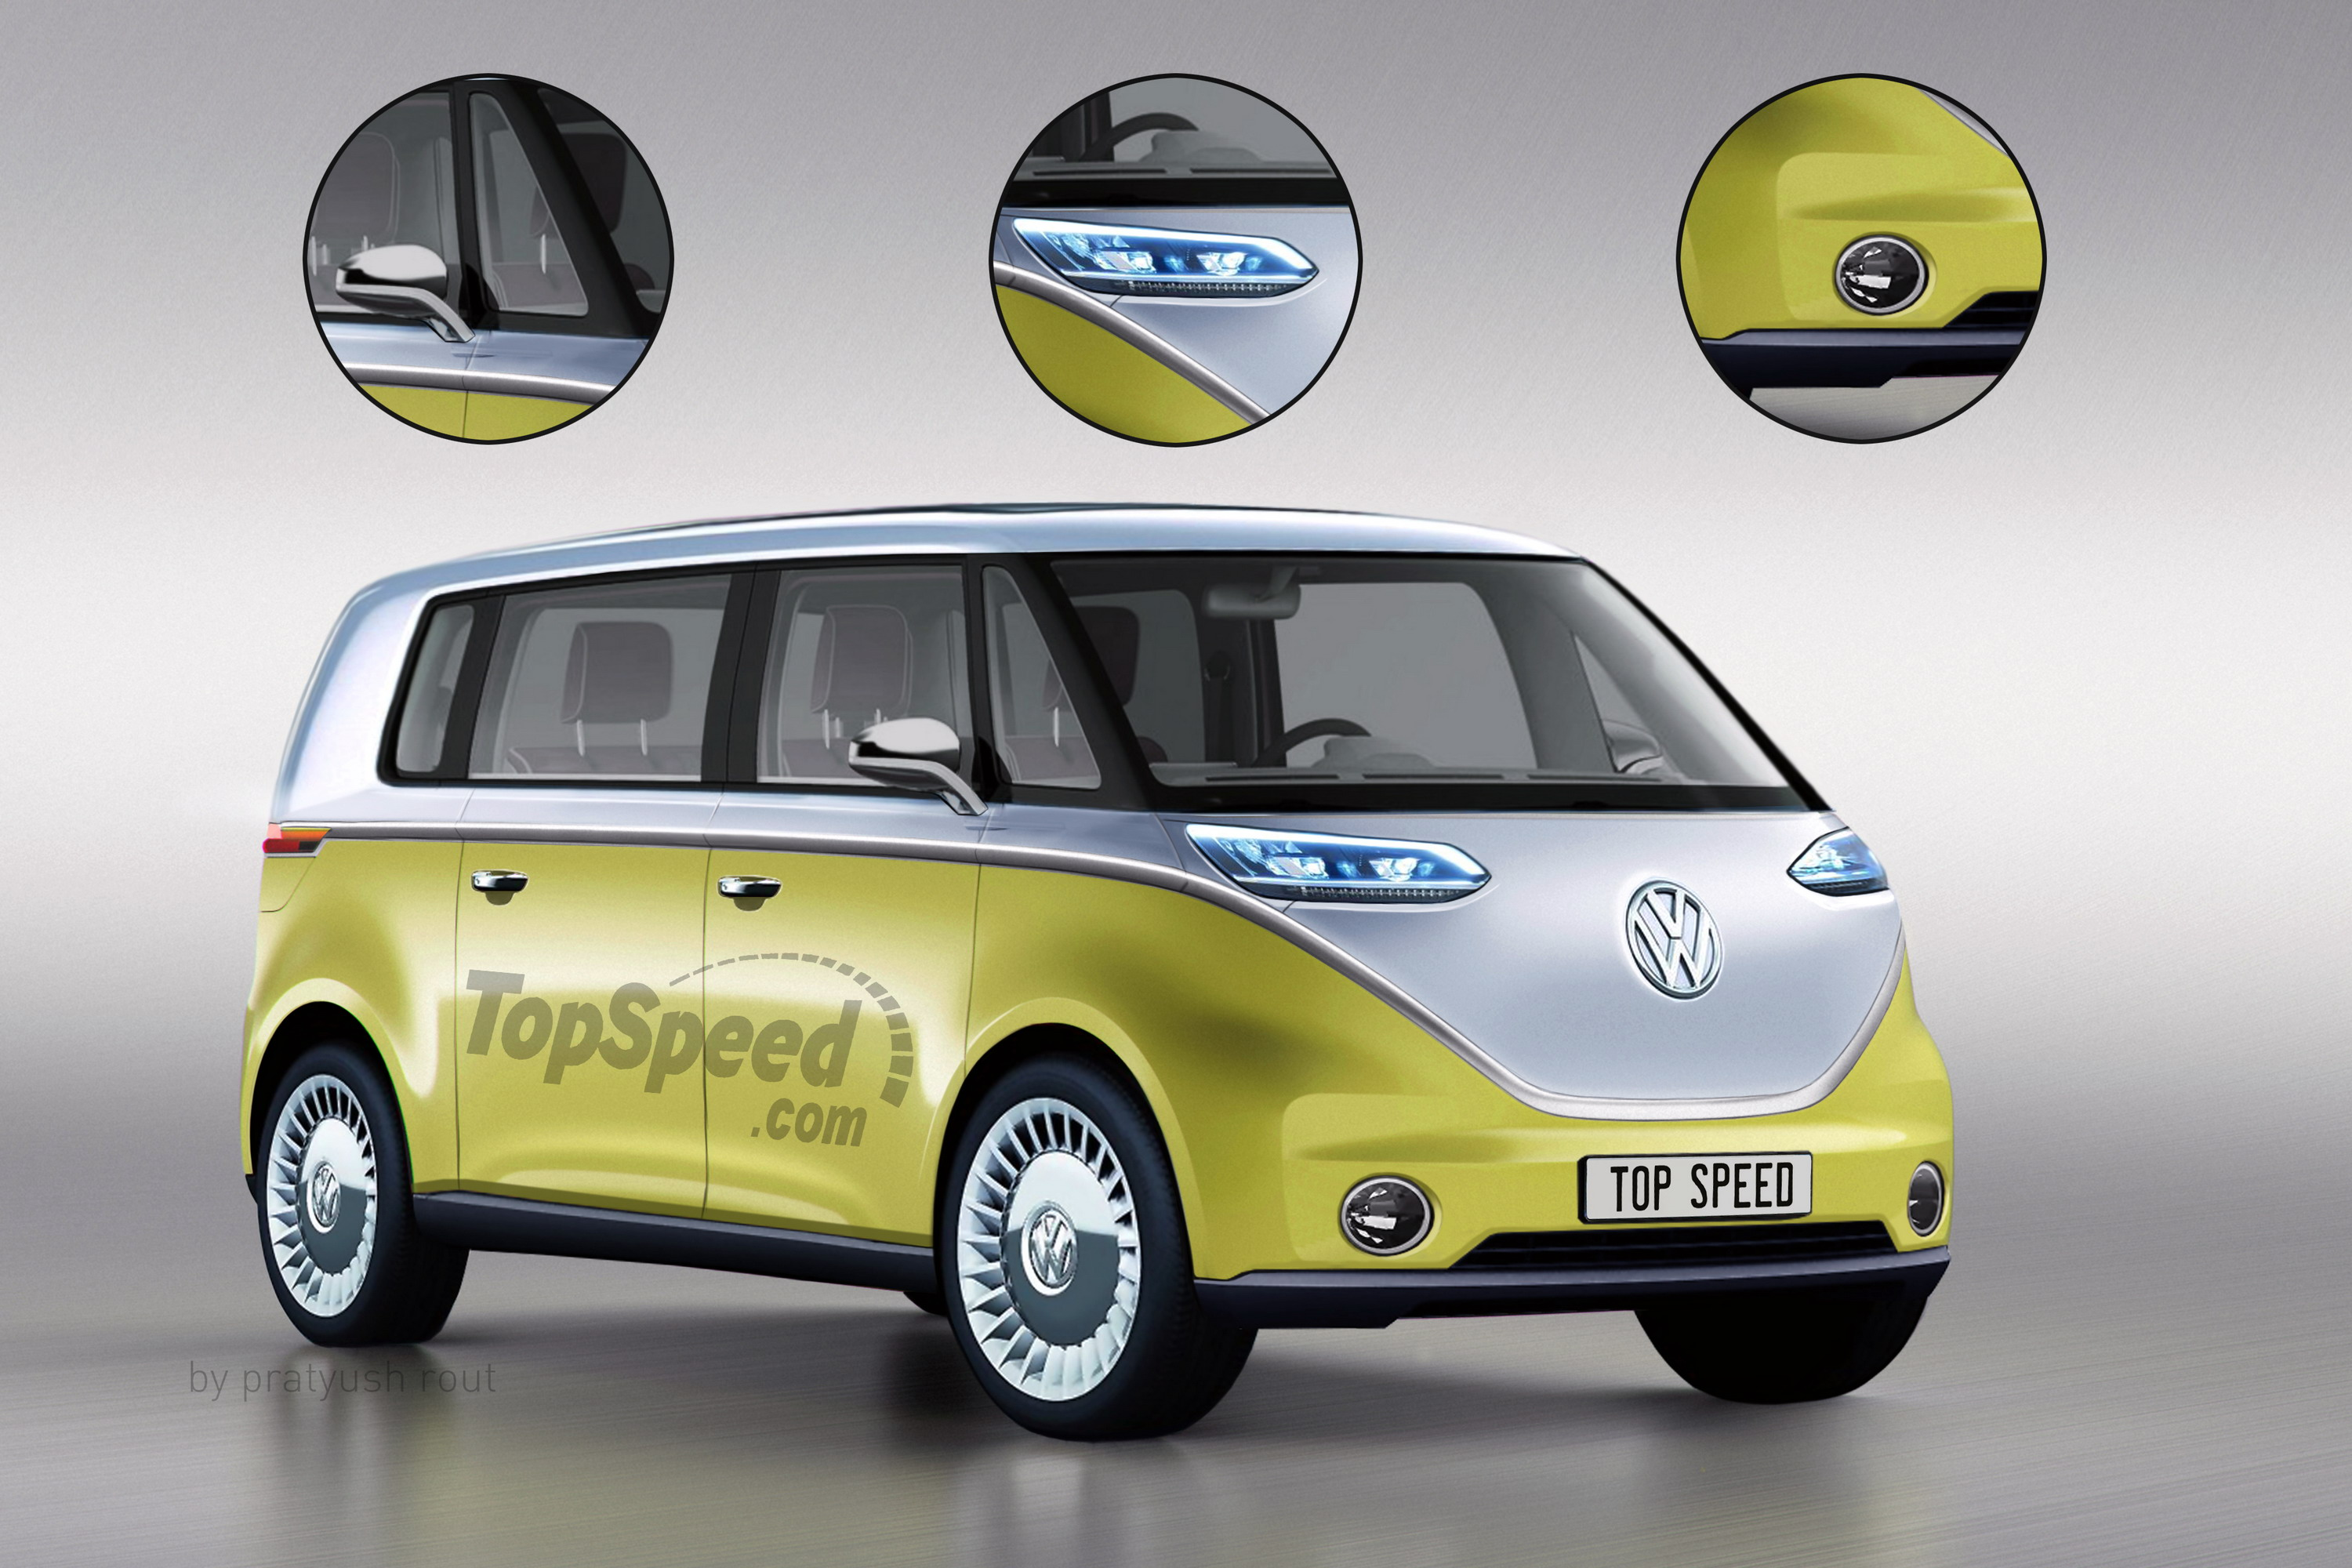 2020 Volkswagen Van Top Speed